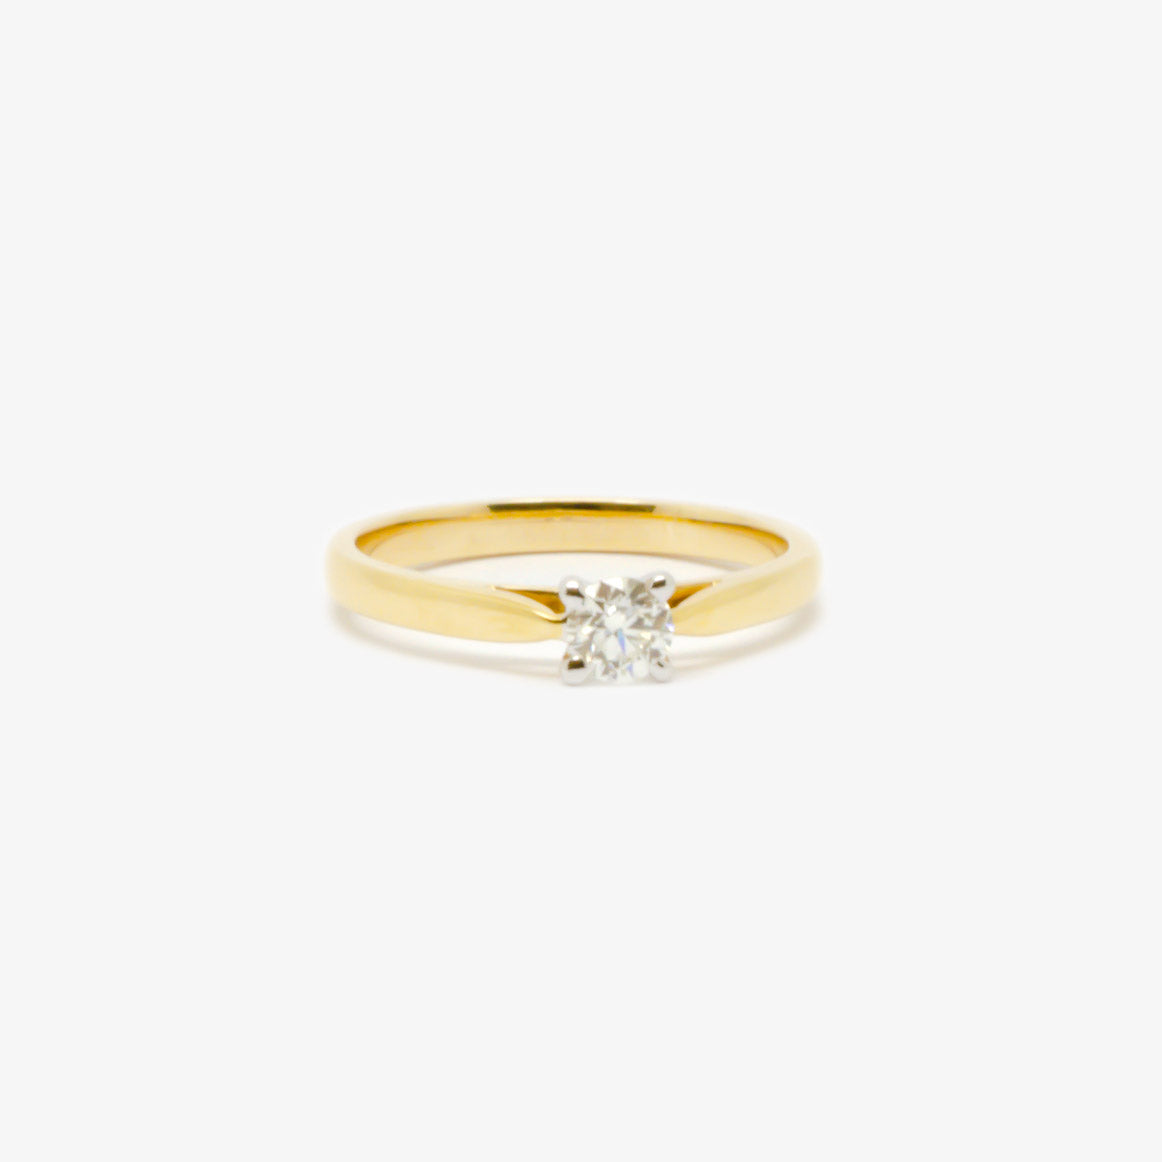 0.27 Carat Four Claw Diamond Solitaire Ring